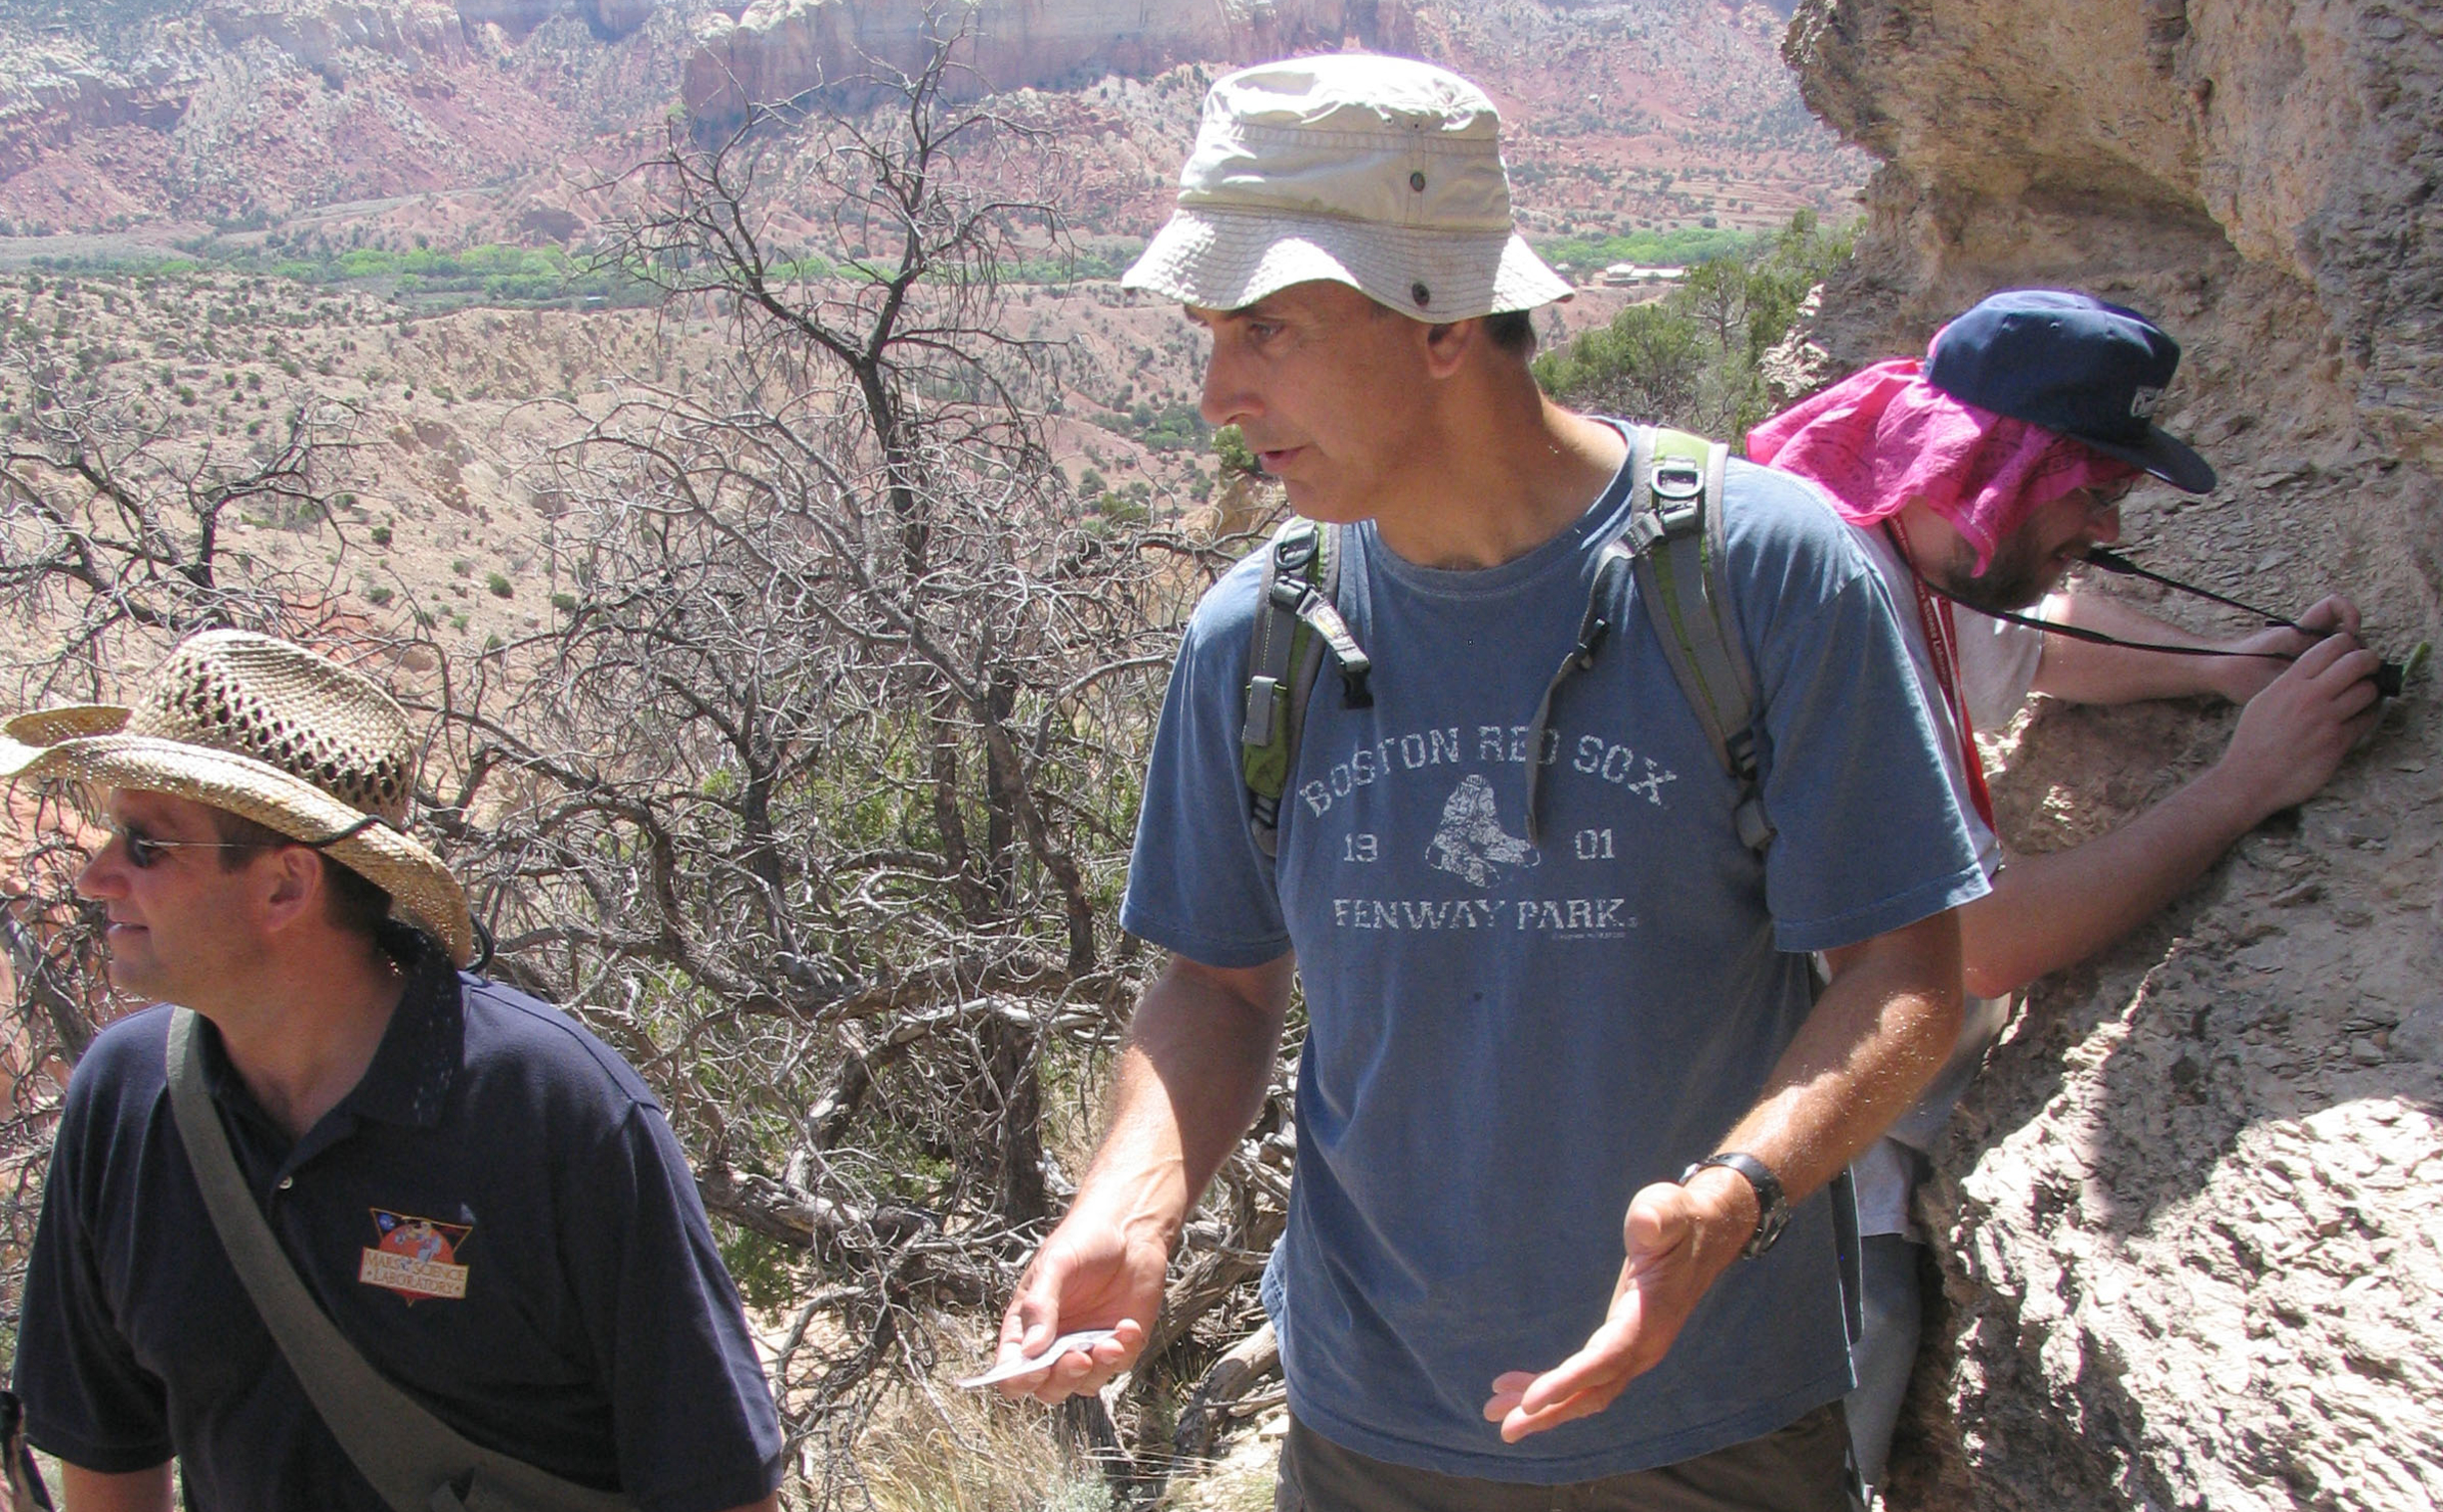 John Grotzinger is standing at the face of a cliff and in discussion with two other team members.  The cliff, which is beige and gray in color, has many layers in the rocks.  Ken Edgett, wearing a baseball hat with a red handkerchief hanging out the back to protect his neck from the sun, is taking close-up pictures of the cliff with a small black camera.